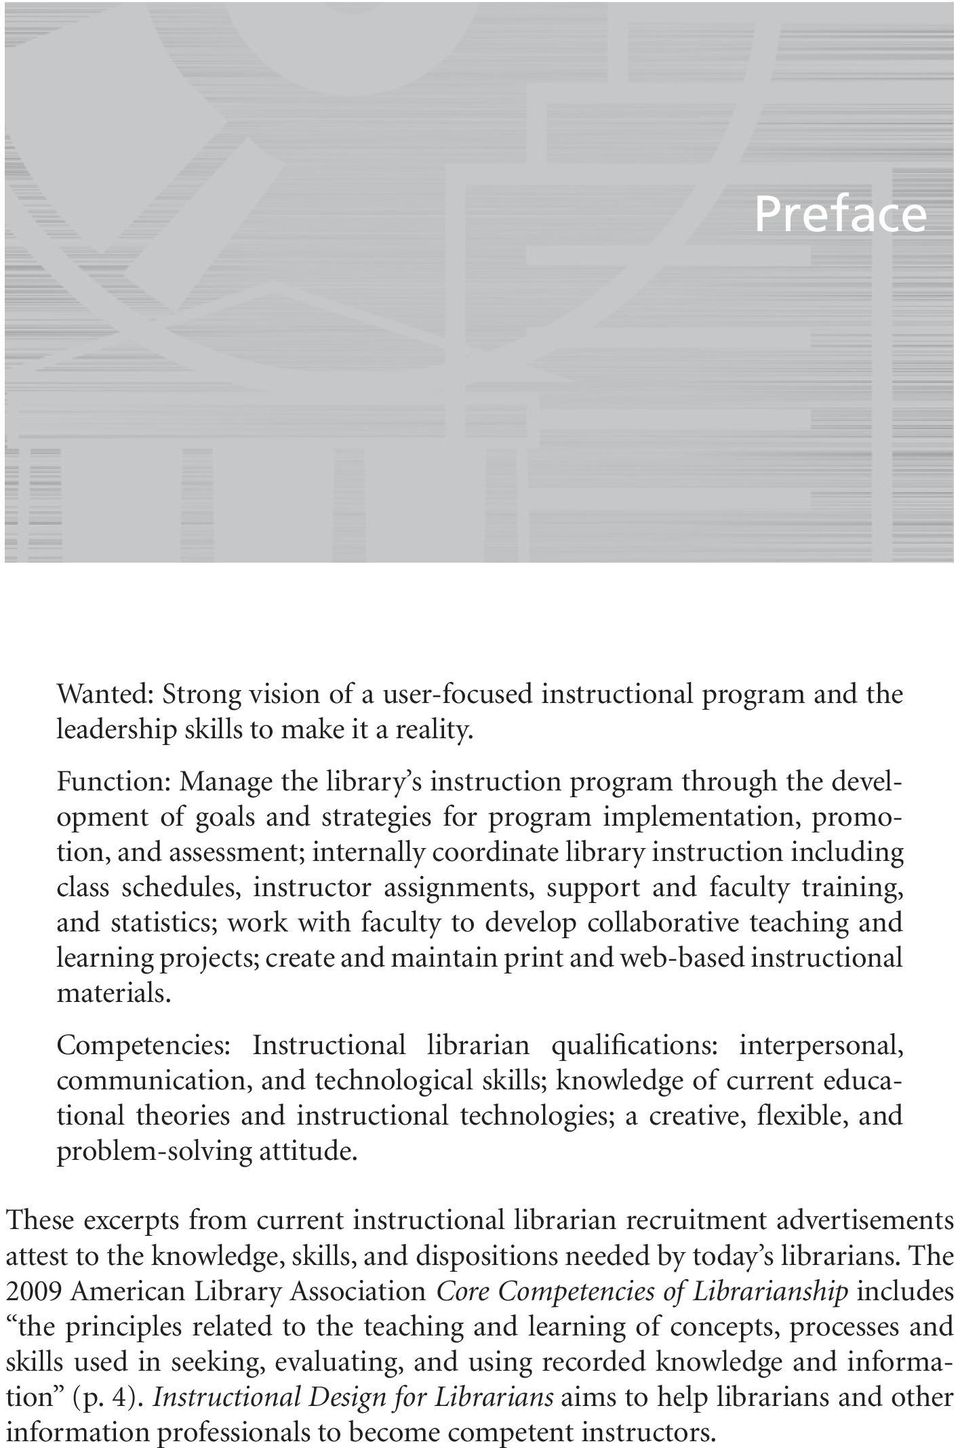 including class schedules, instructor assignments, support and faculty training, and statistics; work with faculty to develop collaborative teaching and learning projects; create and maintain print